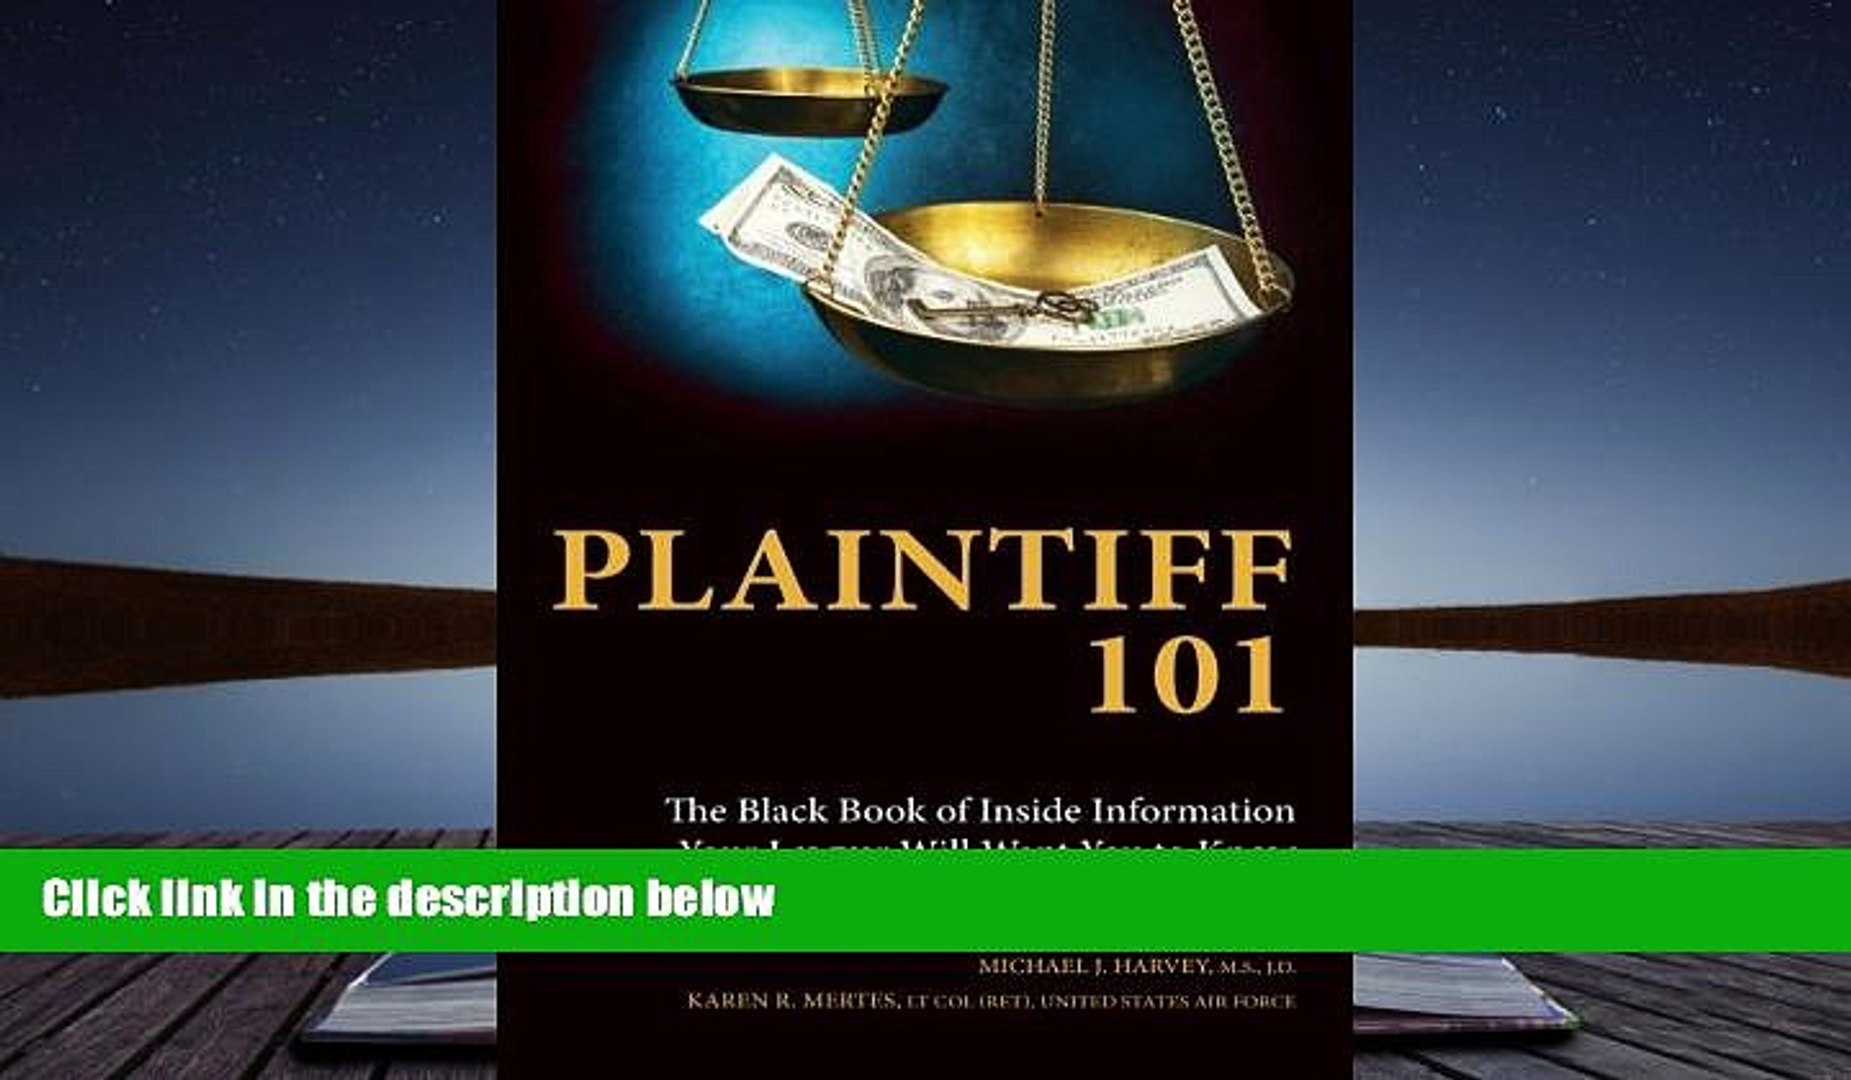 Buy Karen R. Mertes Plaintiff 101: The Black Book of Inside Information Your Lawyer Will Want You